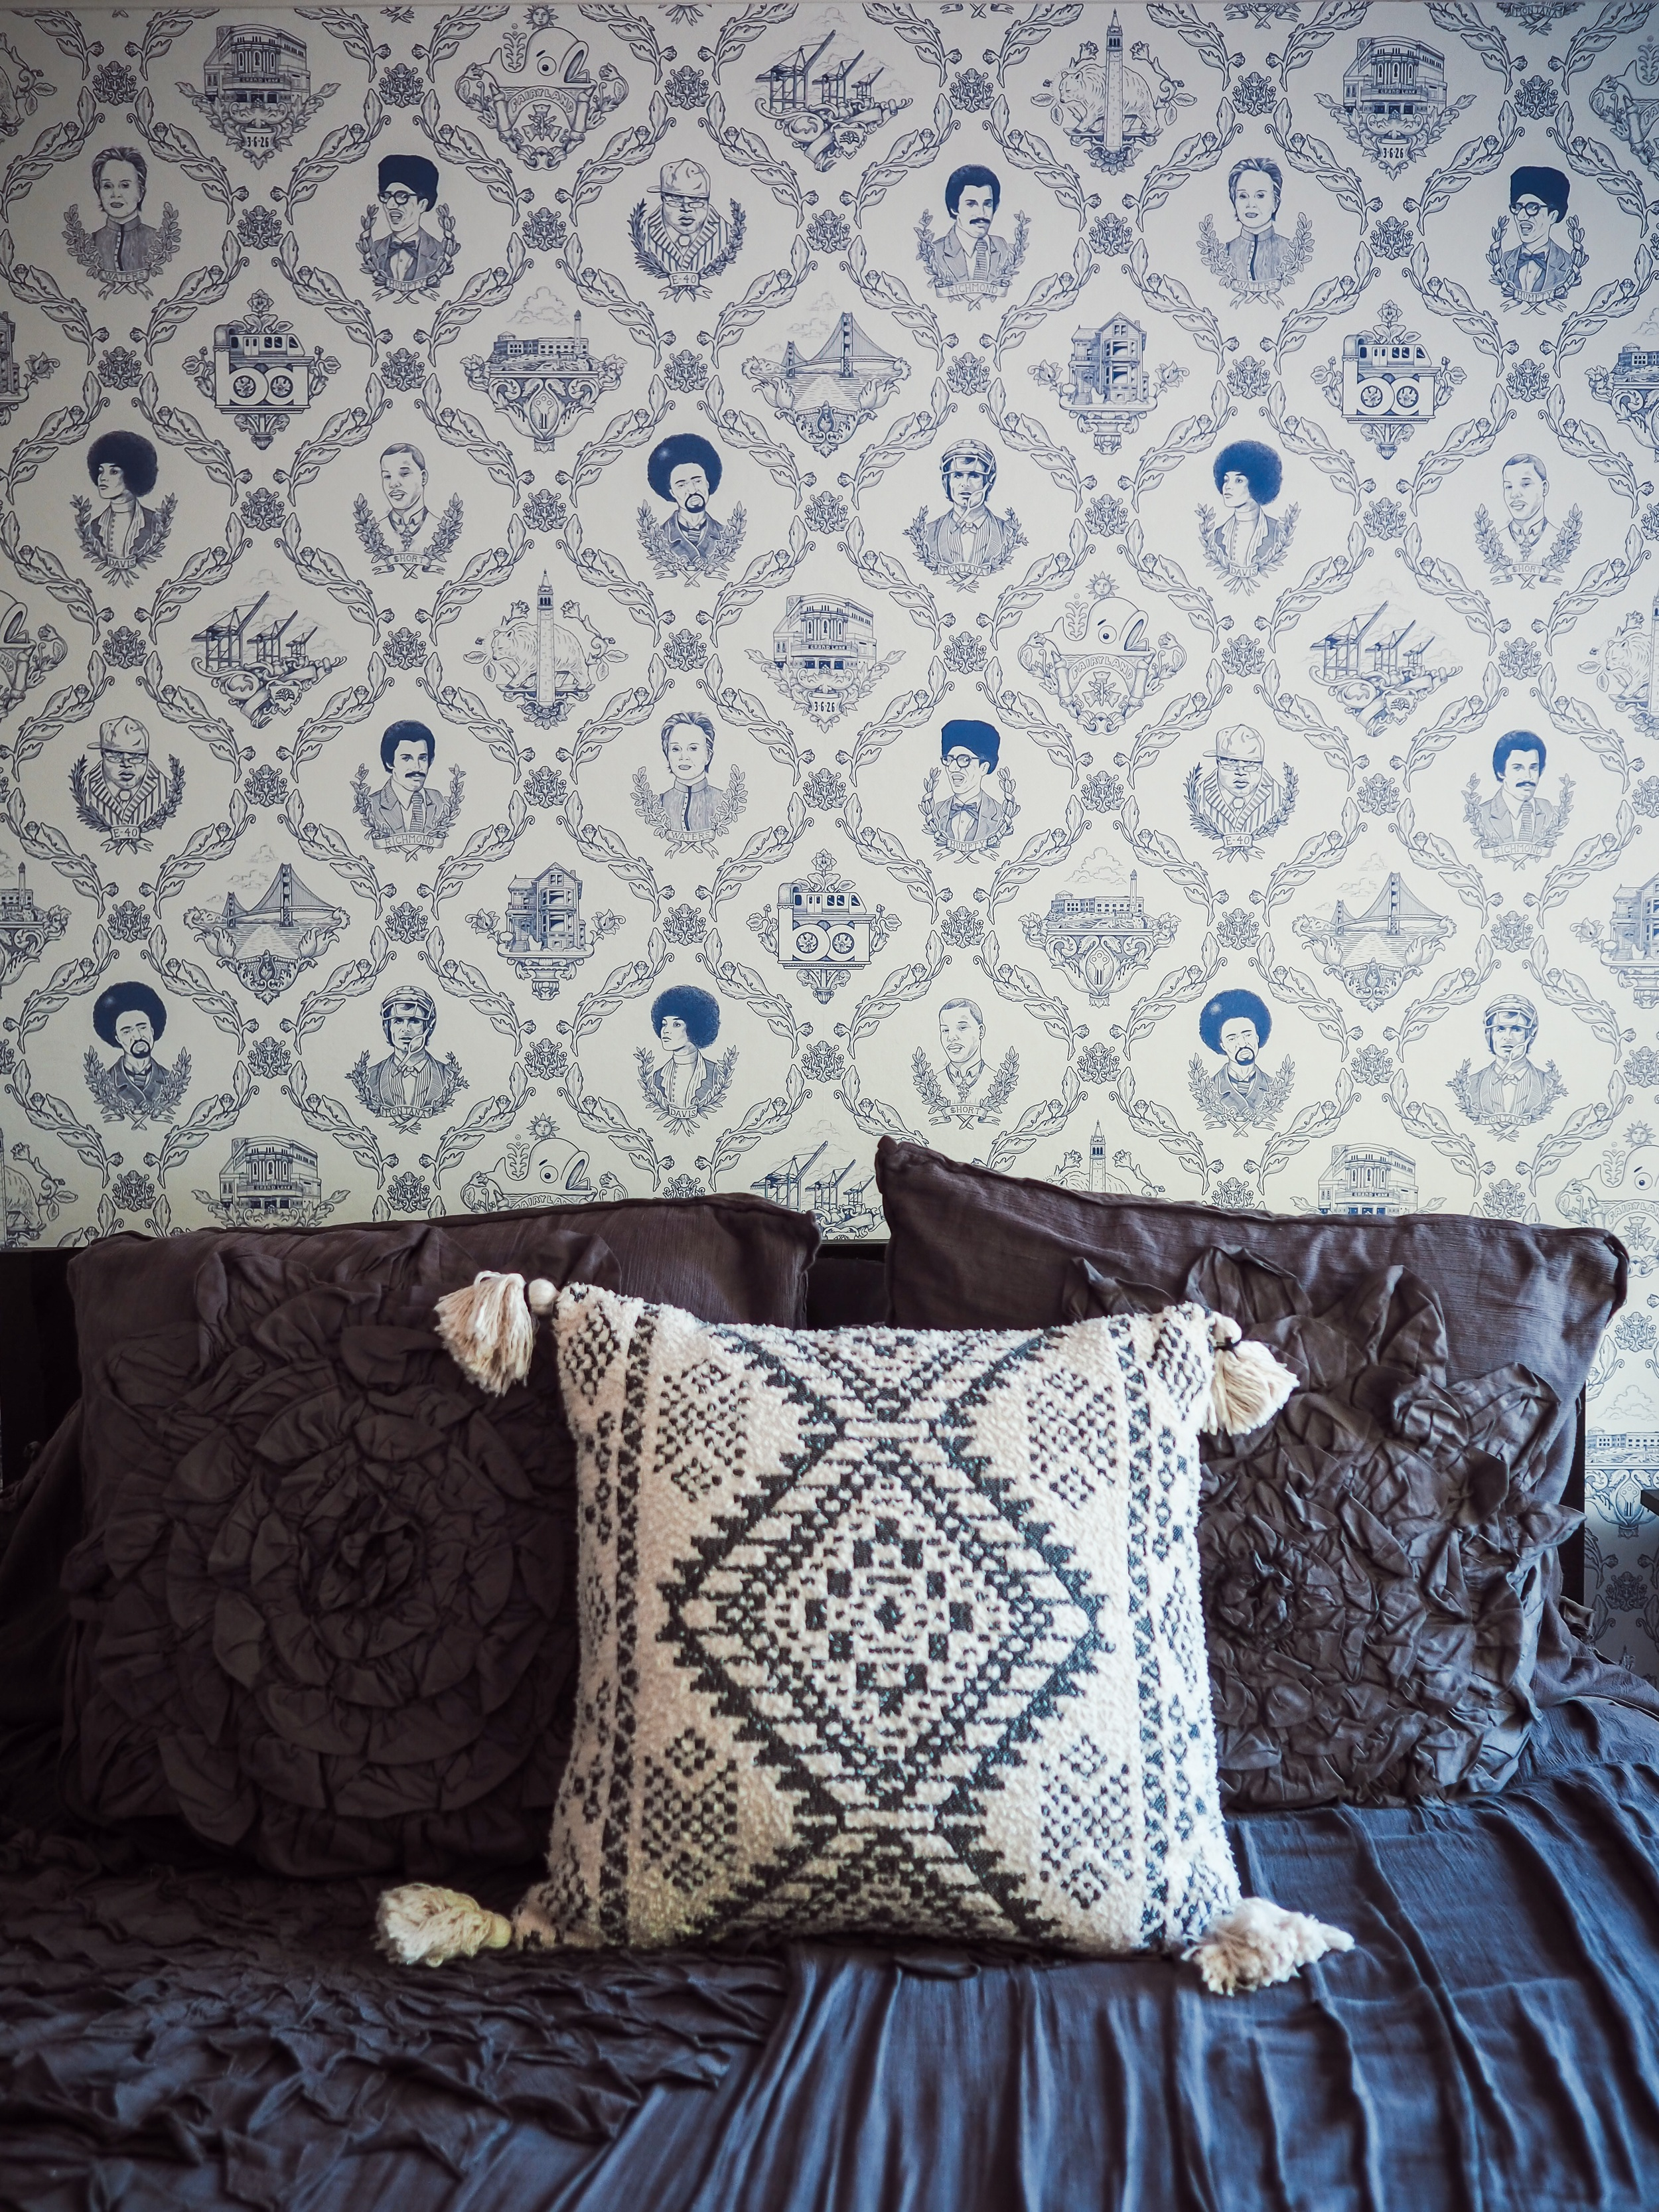 Find out how to choose the right wallpaper for your space plus pros and cons in this blog post by Kelsey of Blondes & Bagels.